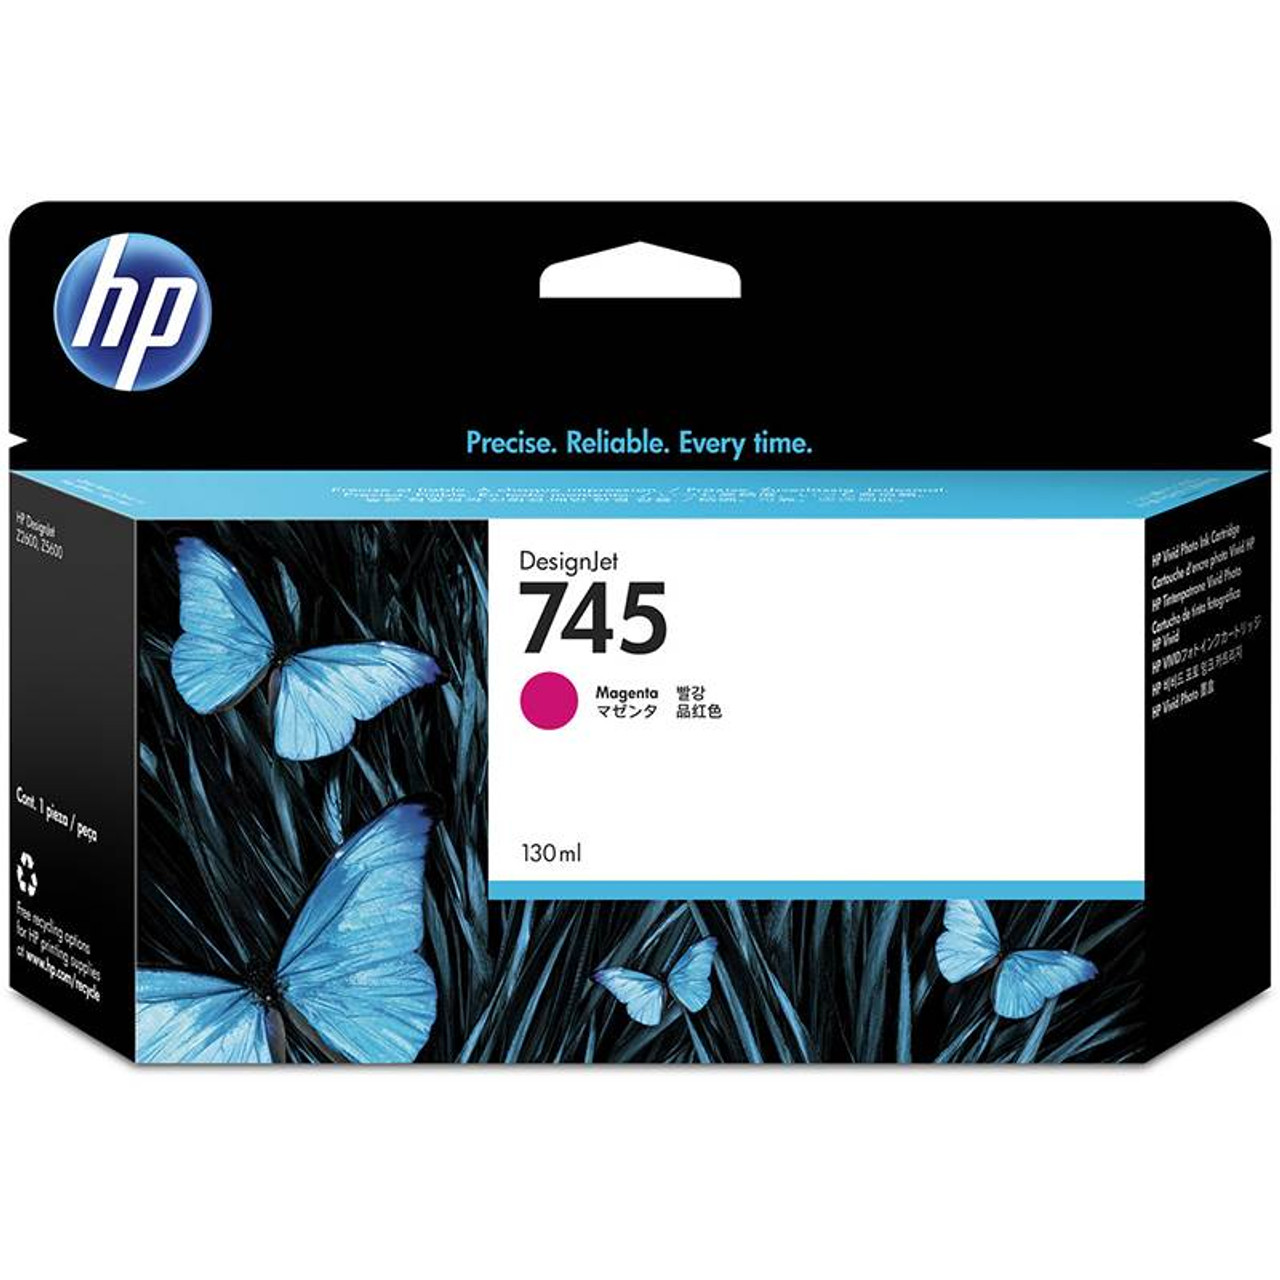 Image for HP745 130ML Ink Cartridge - Magenta (F9J95A) CX Computer Superstore